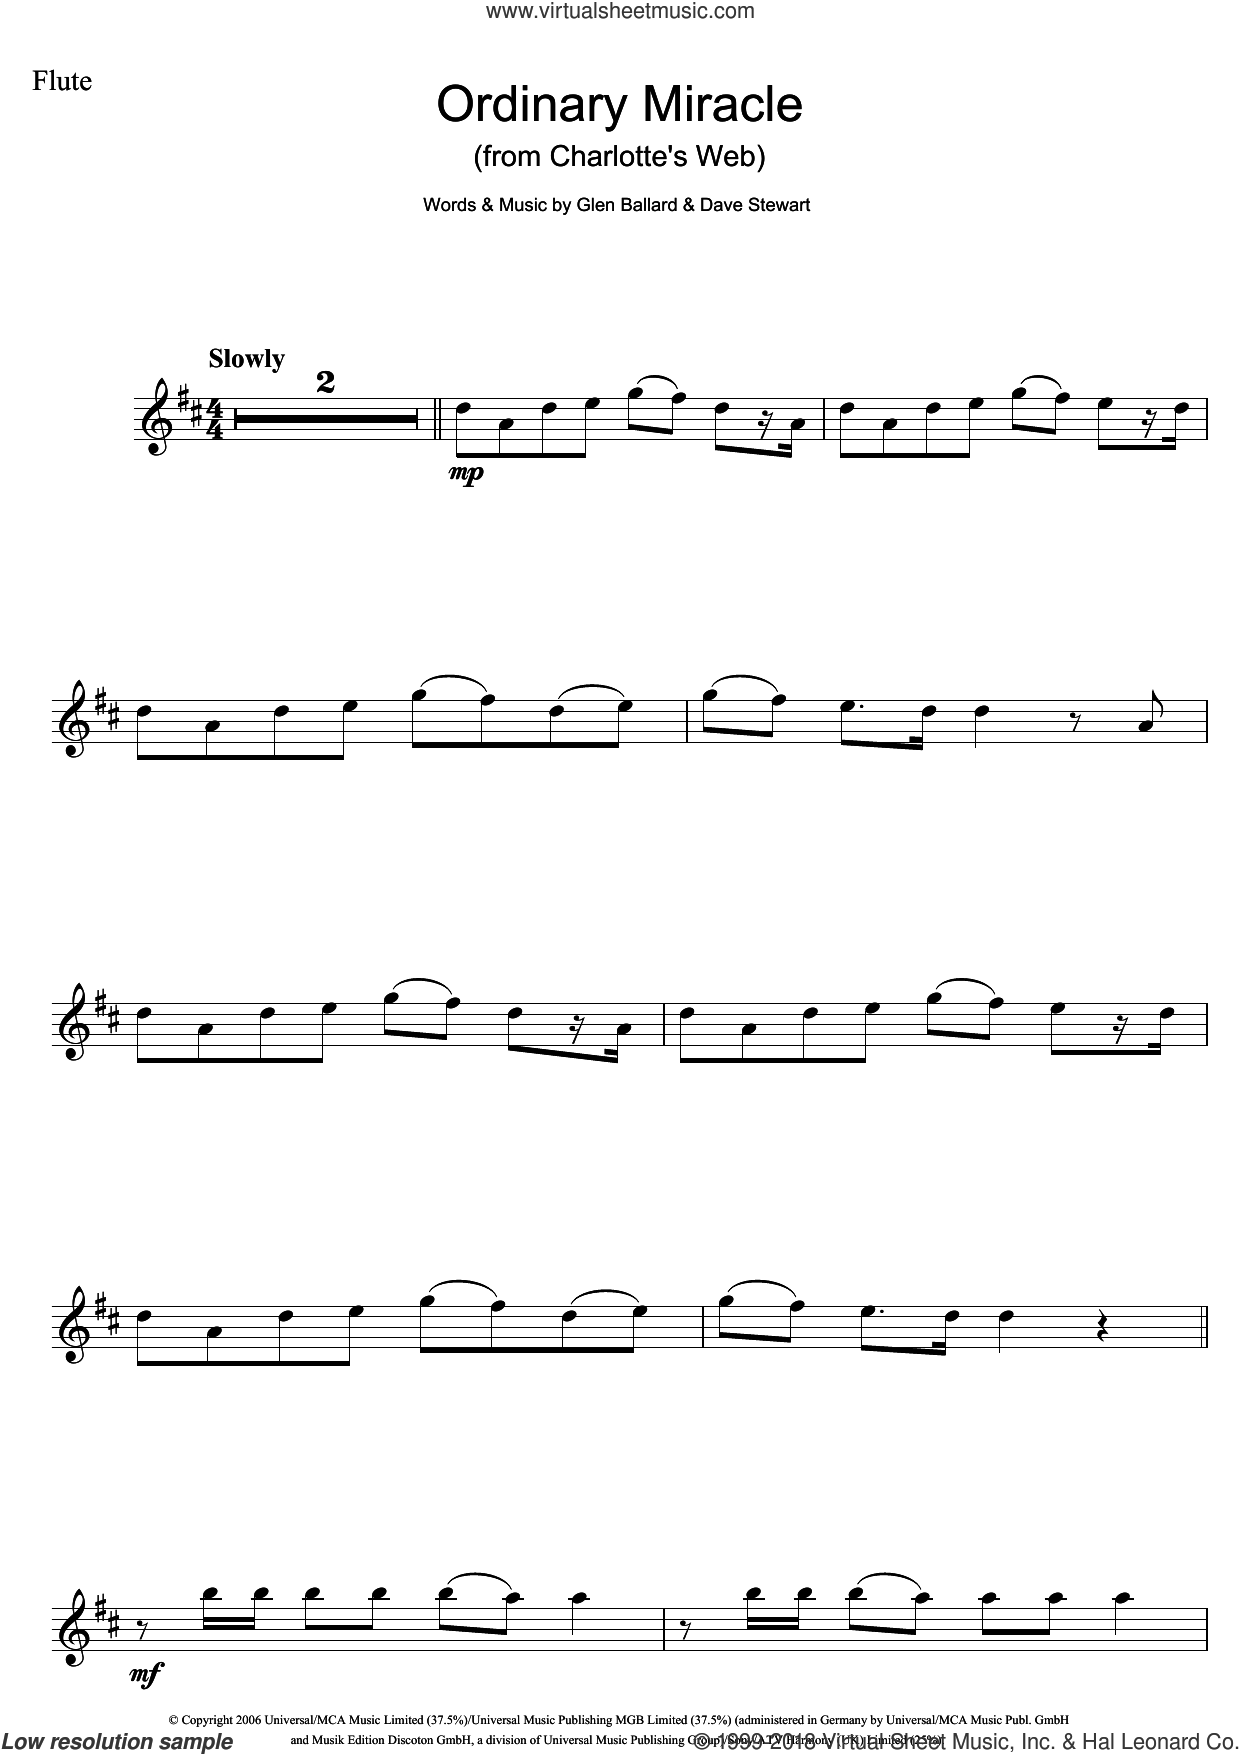 Ordinary Miracle (from Charlotte's Web) sheet music for flute solo by Sarah McLachlan, Dave Stewart and Glen Ballard, intermediate skill level